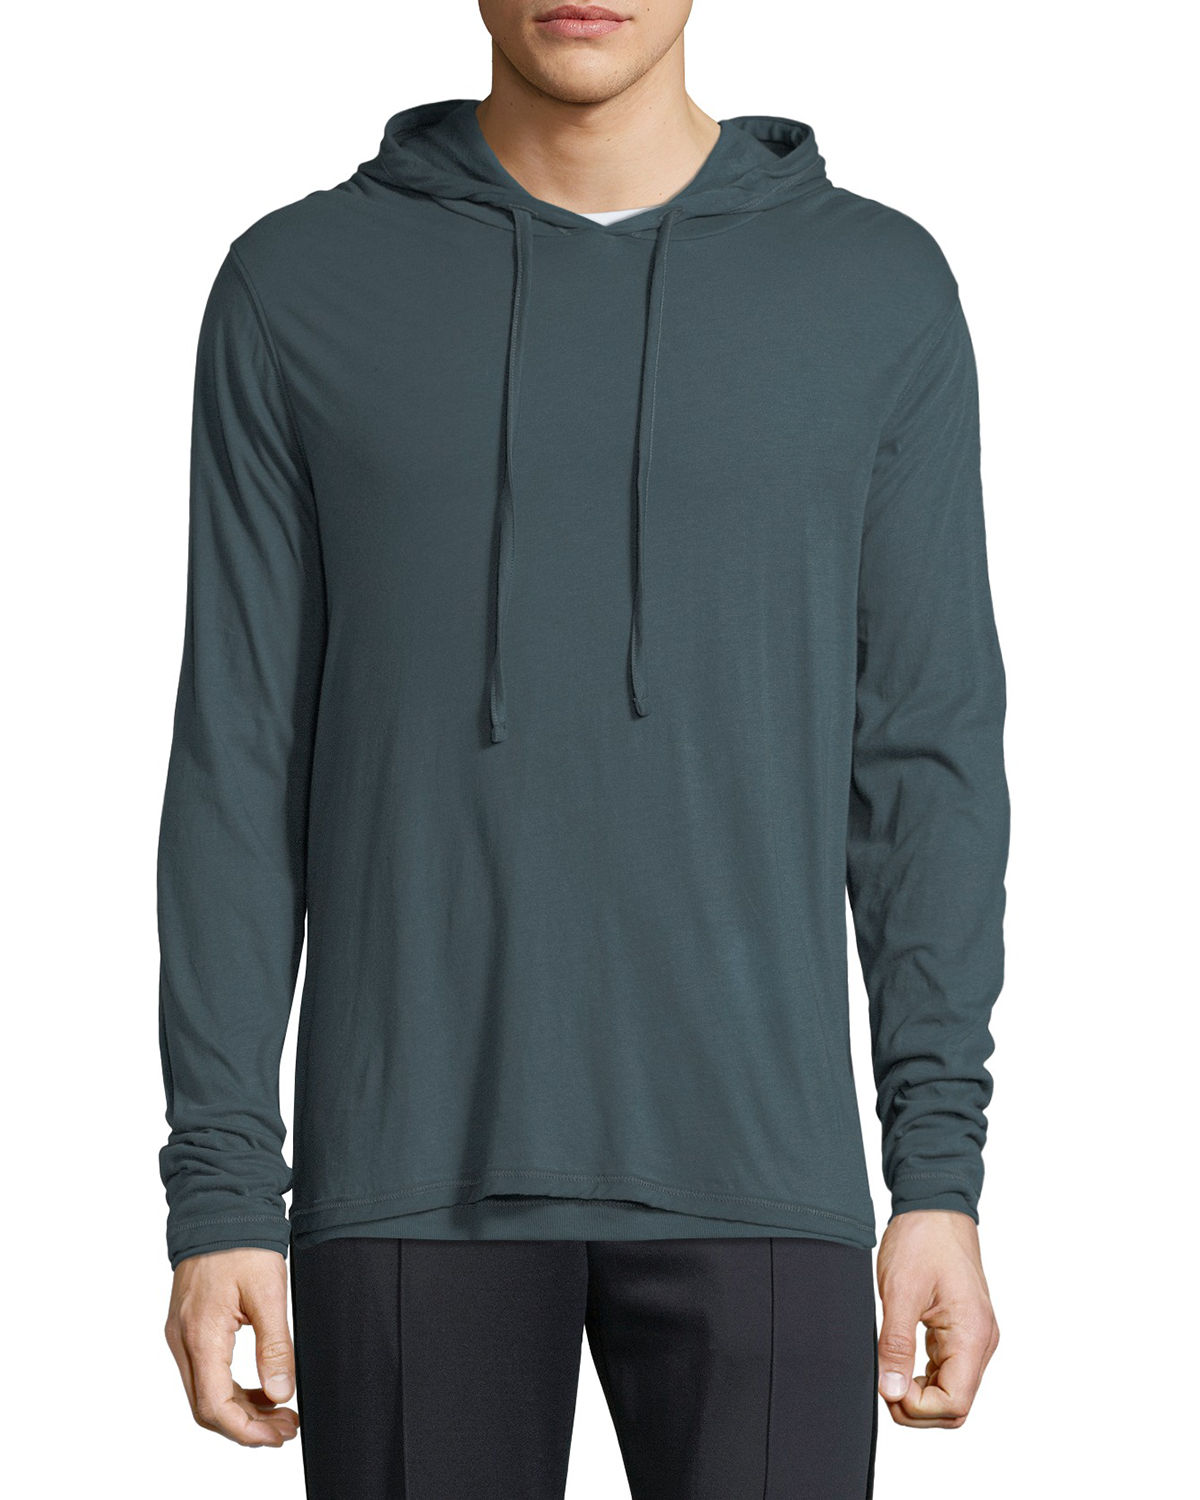 Vince 0 MEN'S DOUBLE-LAYER PULLOVER HOODIE